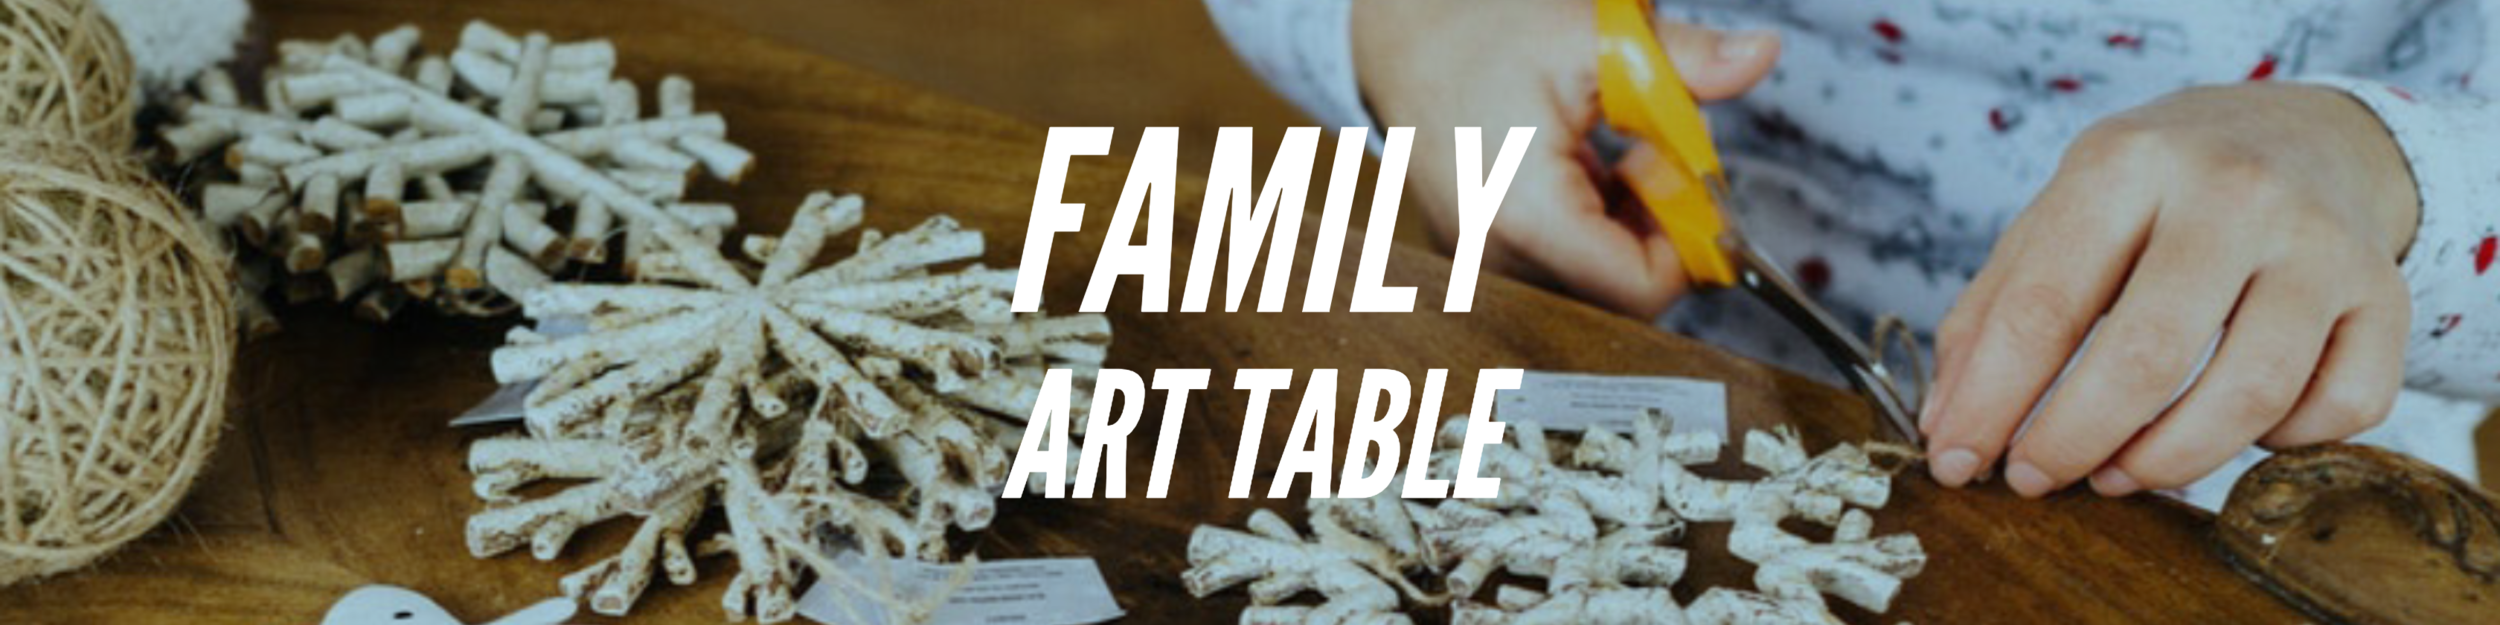 Family Art Table.png